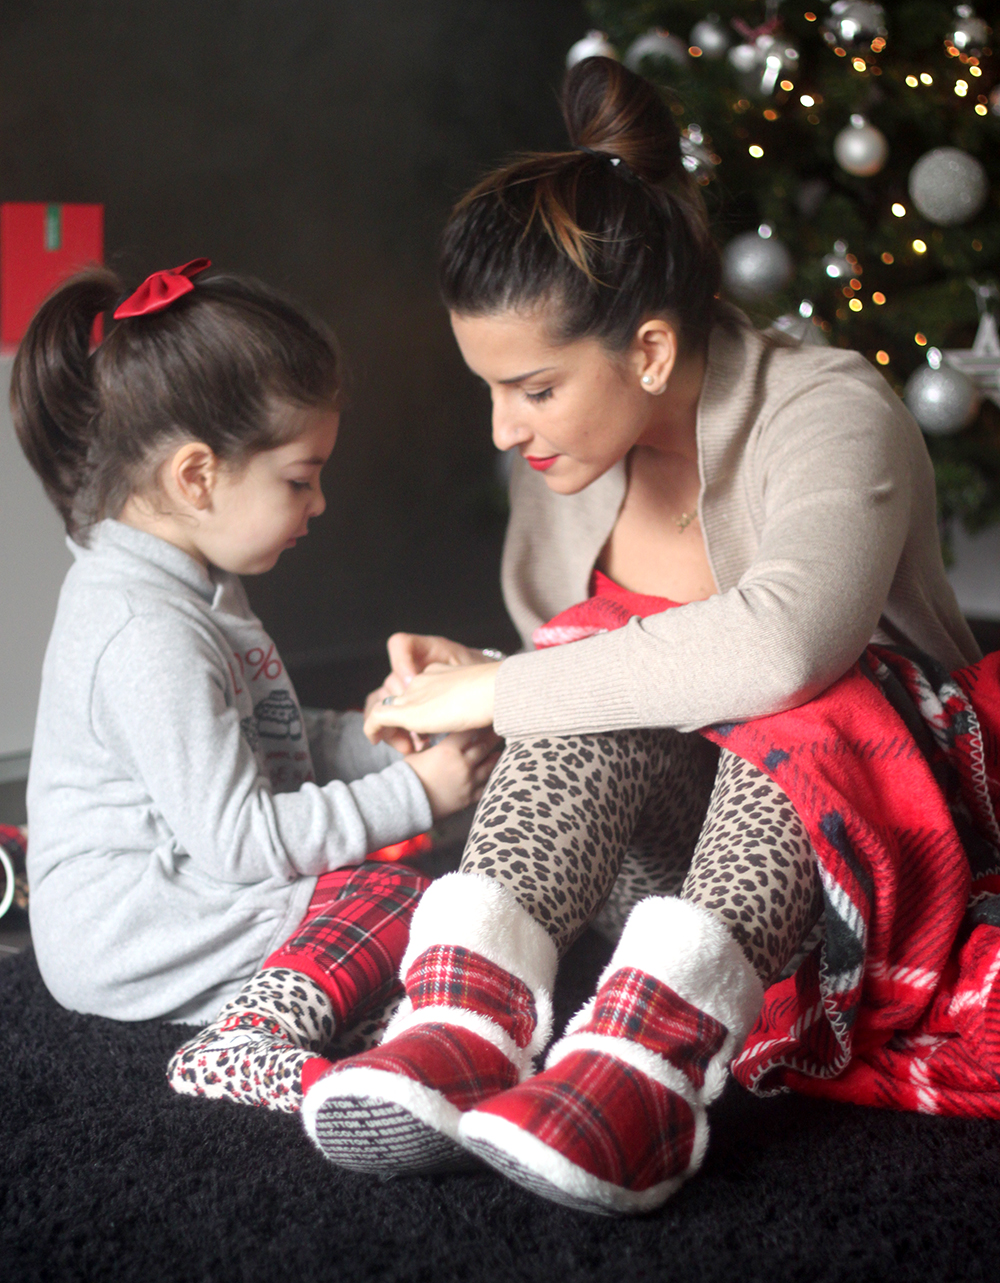 natale_albero_luci_look_undercolor_of_benetton_mamma_figlia_plaid_scozzese_animalier_kinder